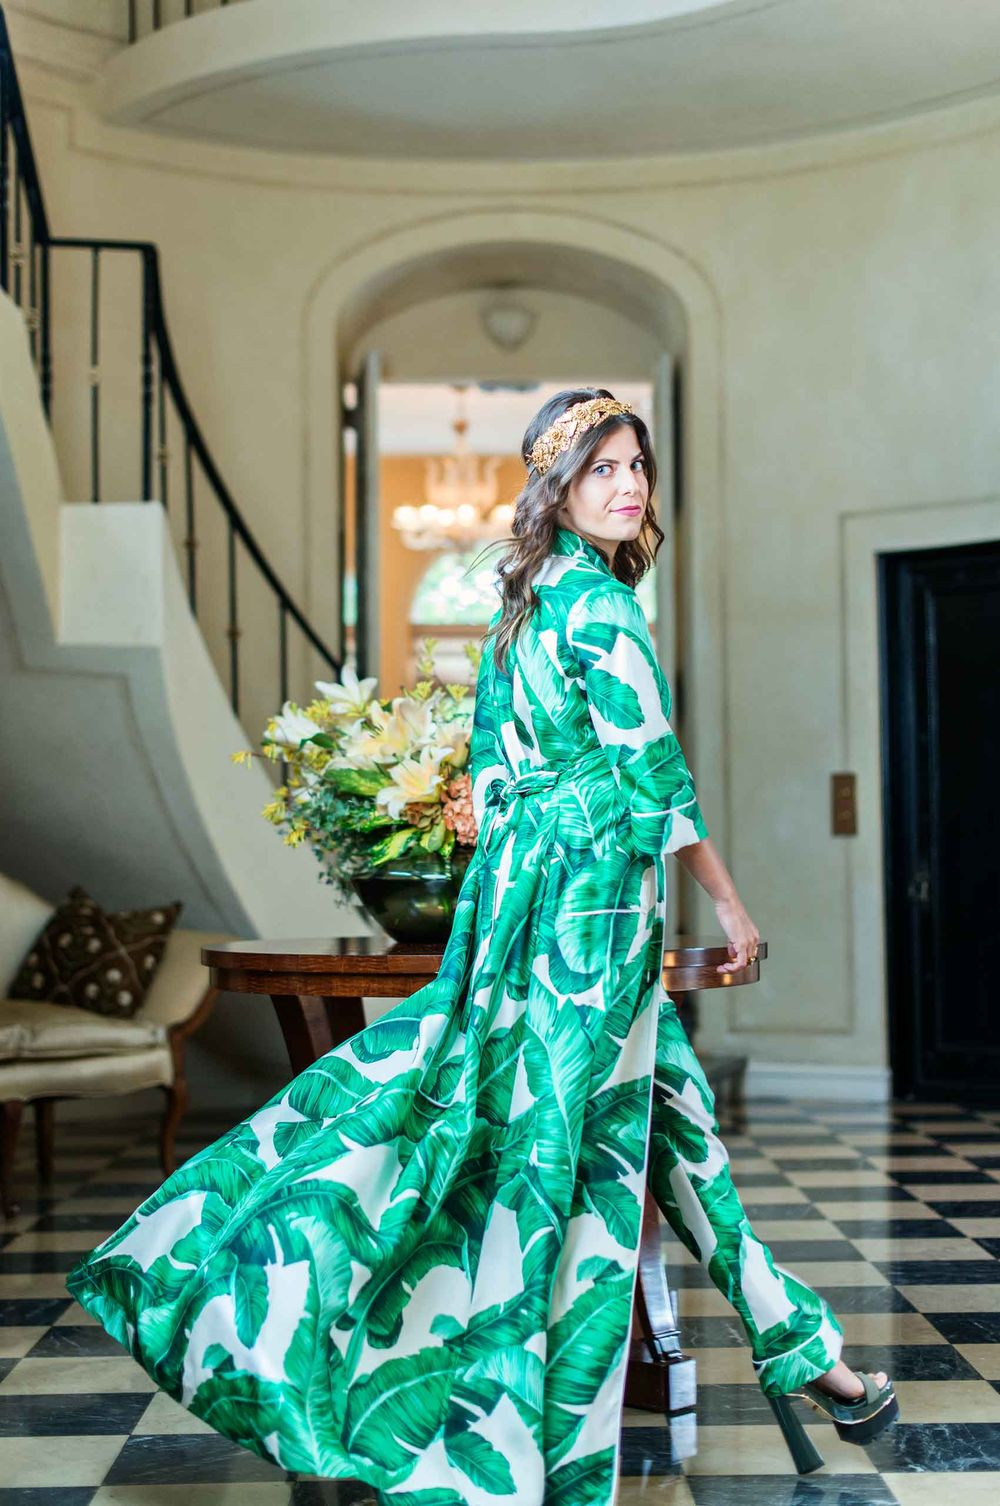 Stylist-LeighanneSinacola-at-TheMansion-Dallas-by-HenrikOlundPhotography.jpg